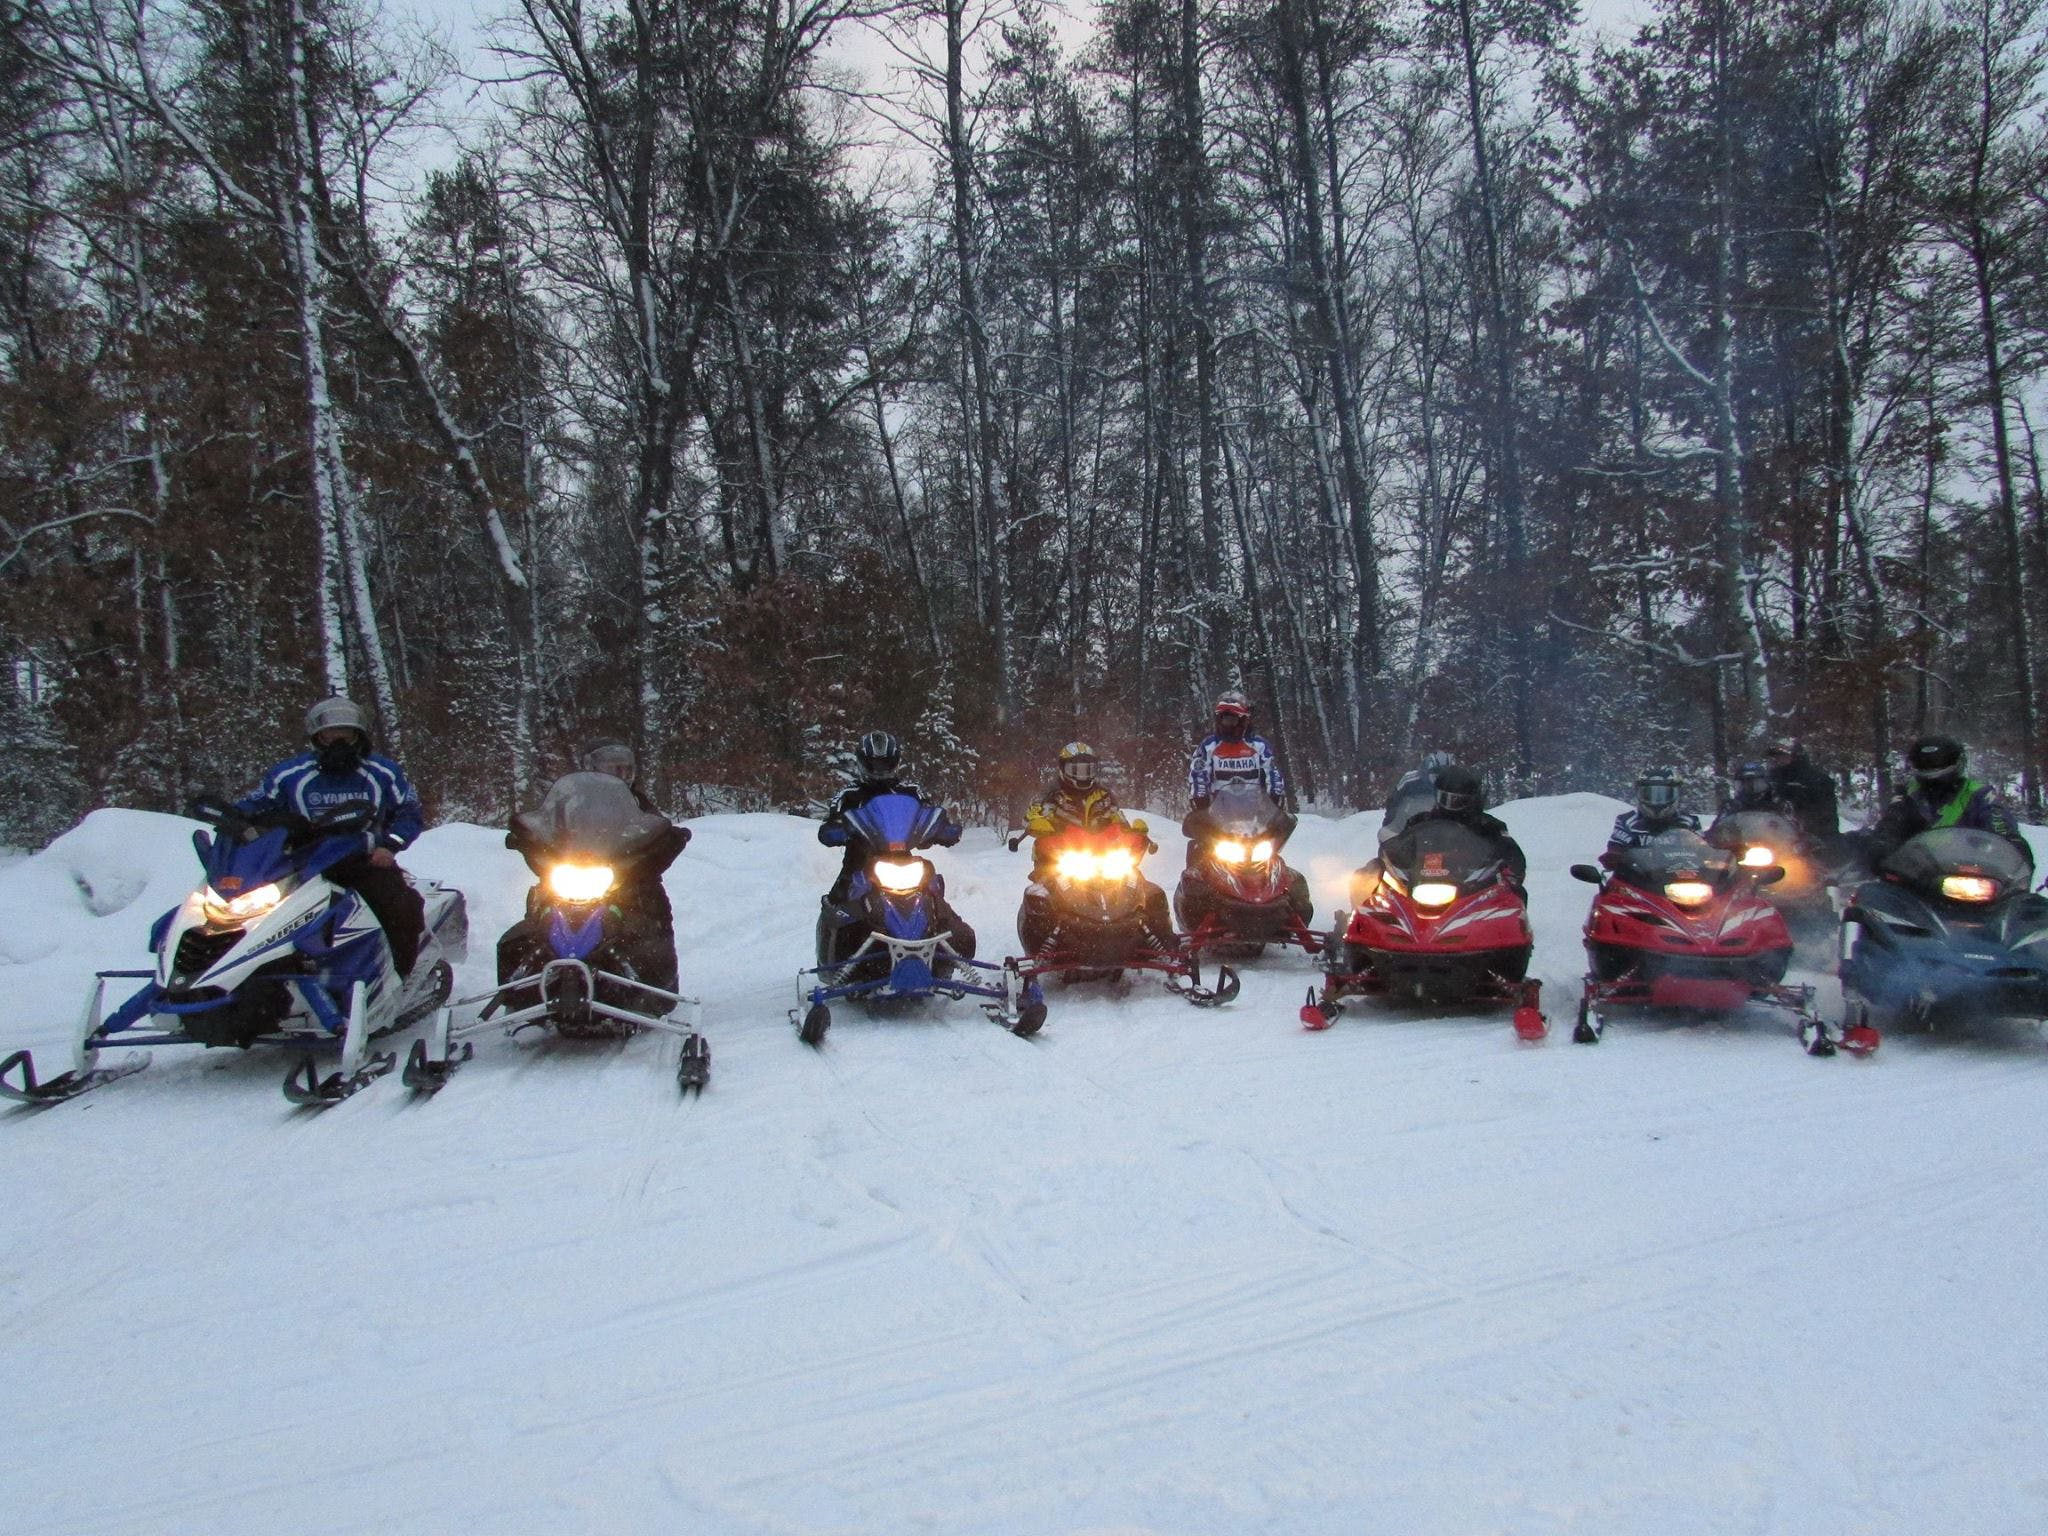 winter accommodations and direct snowmobile trail access make us popular at Best Bear Lodge & Campground